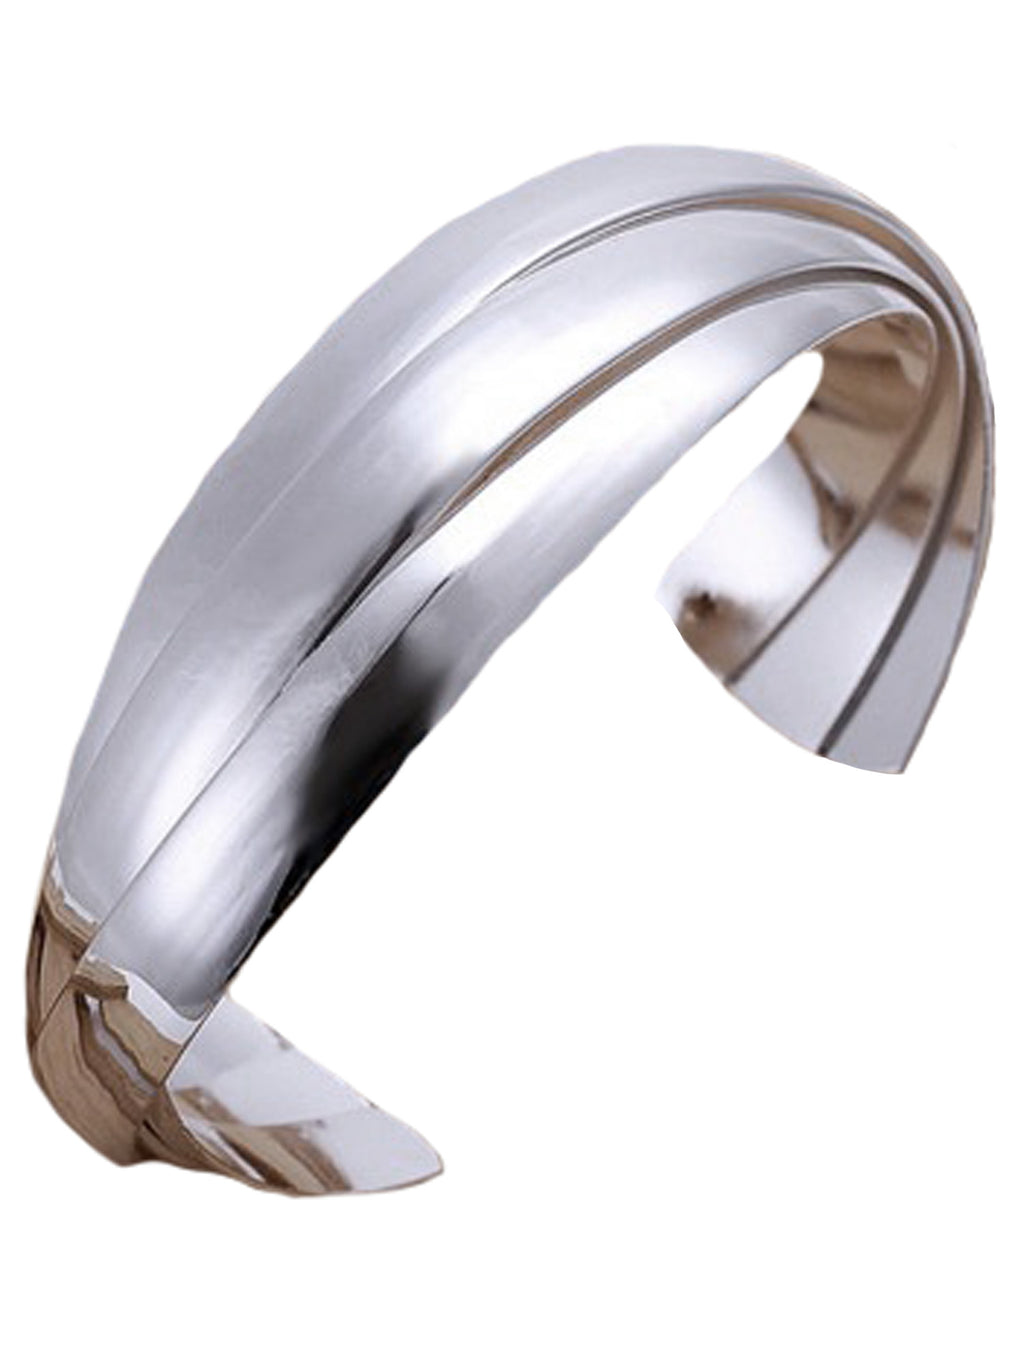 Sterling Silver Plated Wide Layered Bangle Cuff Bracelet